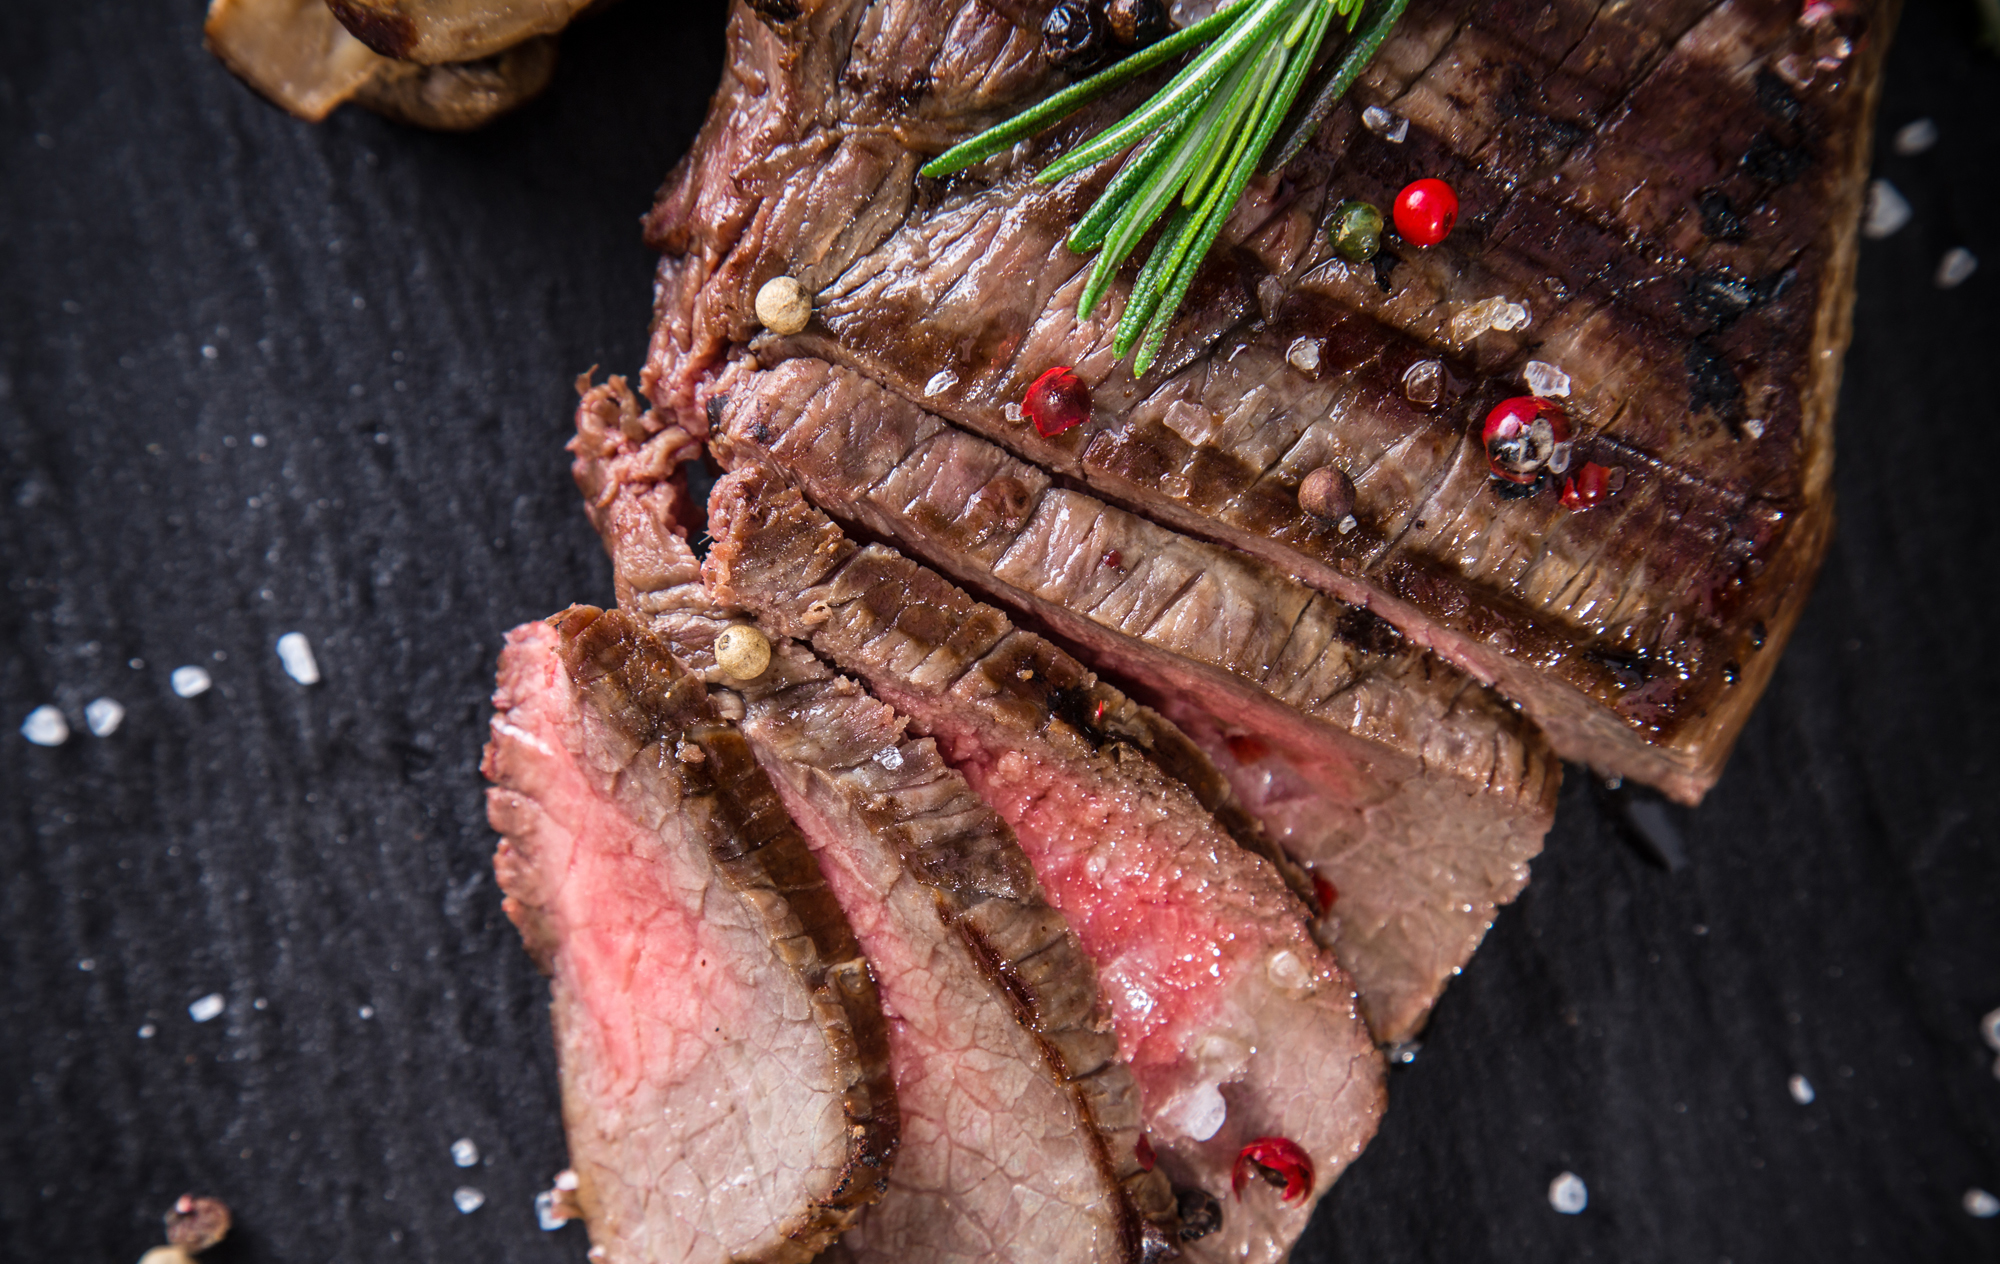 Kings Place london venues conferences dinner events winter promotion dining food steak